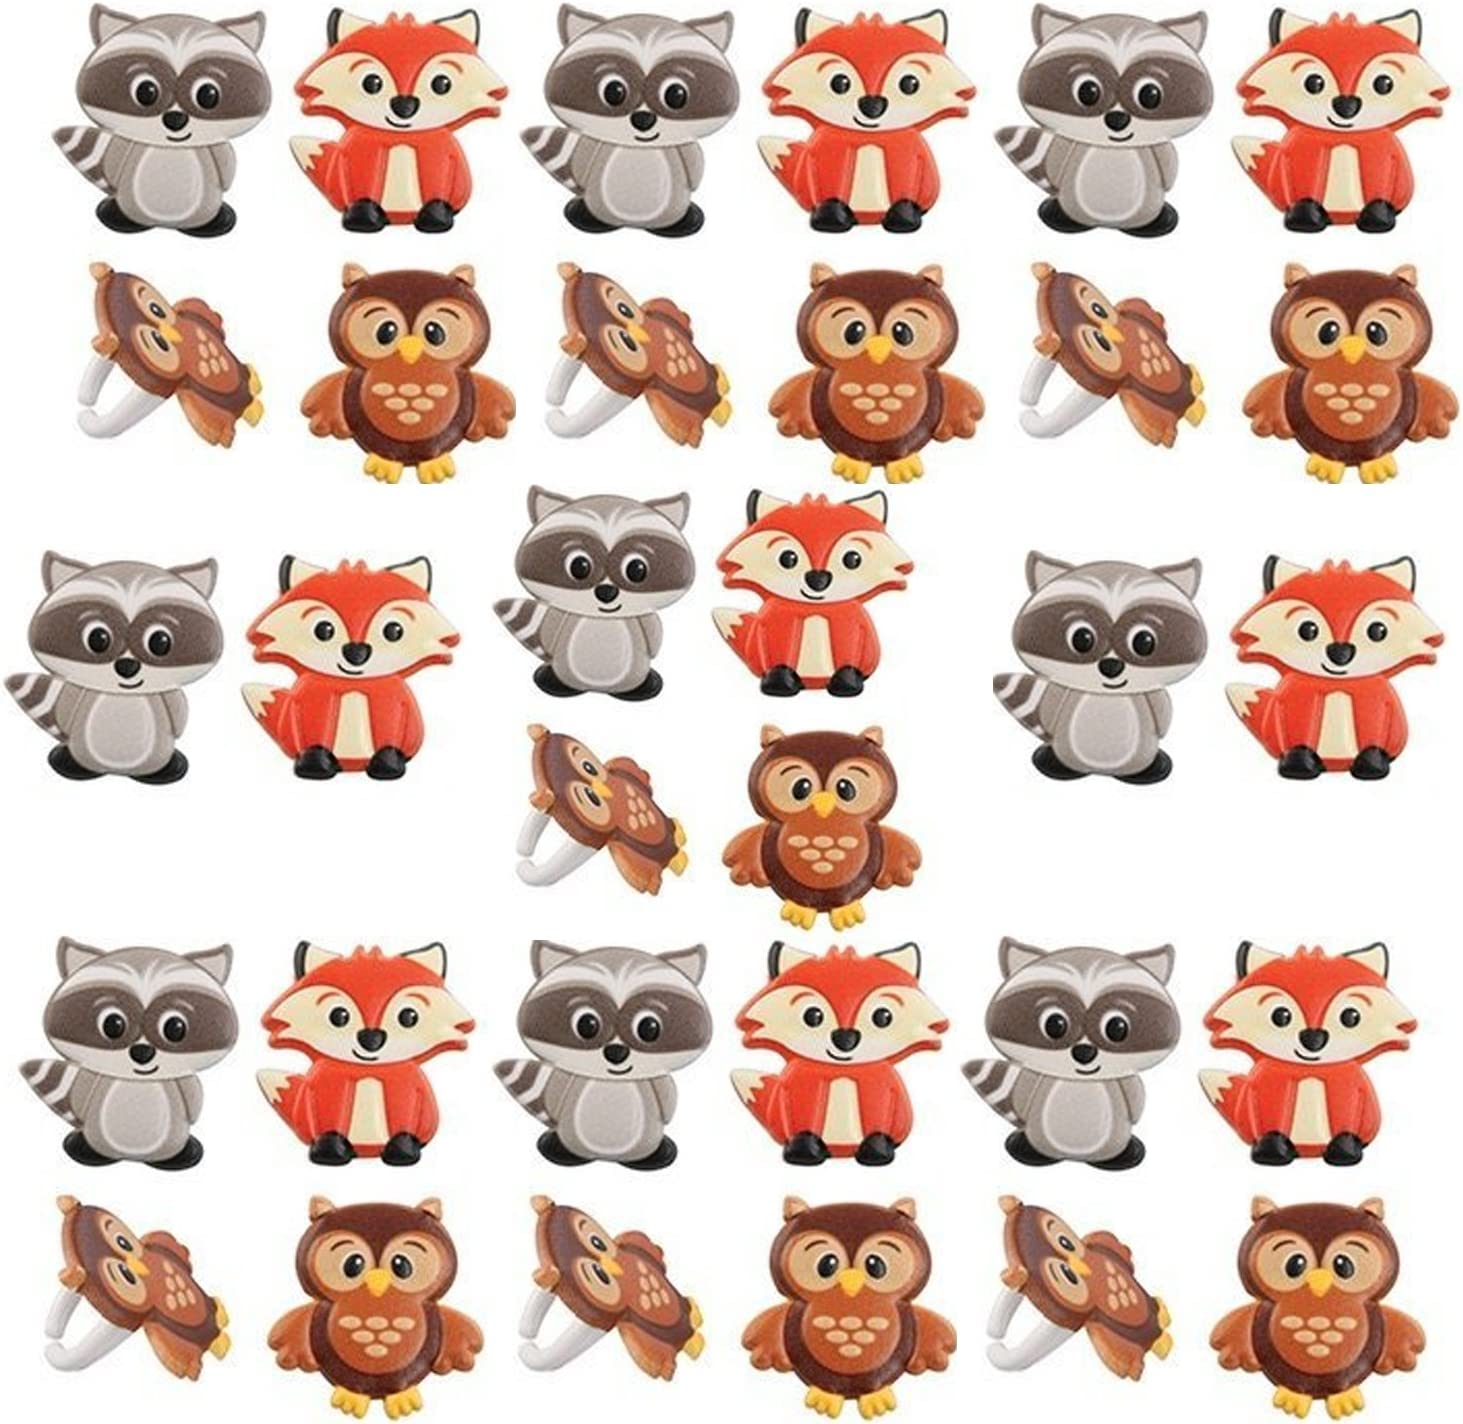 Woodland Animal Friends Cupcake Rings by Bakery Supplies (24-Pack)